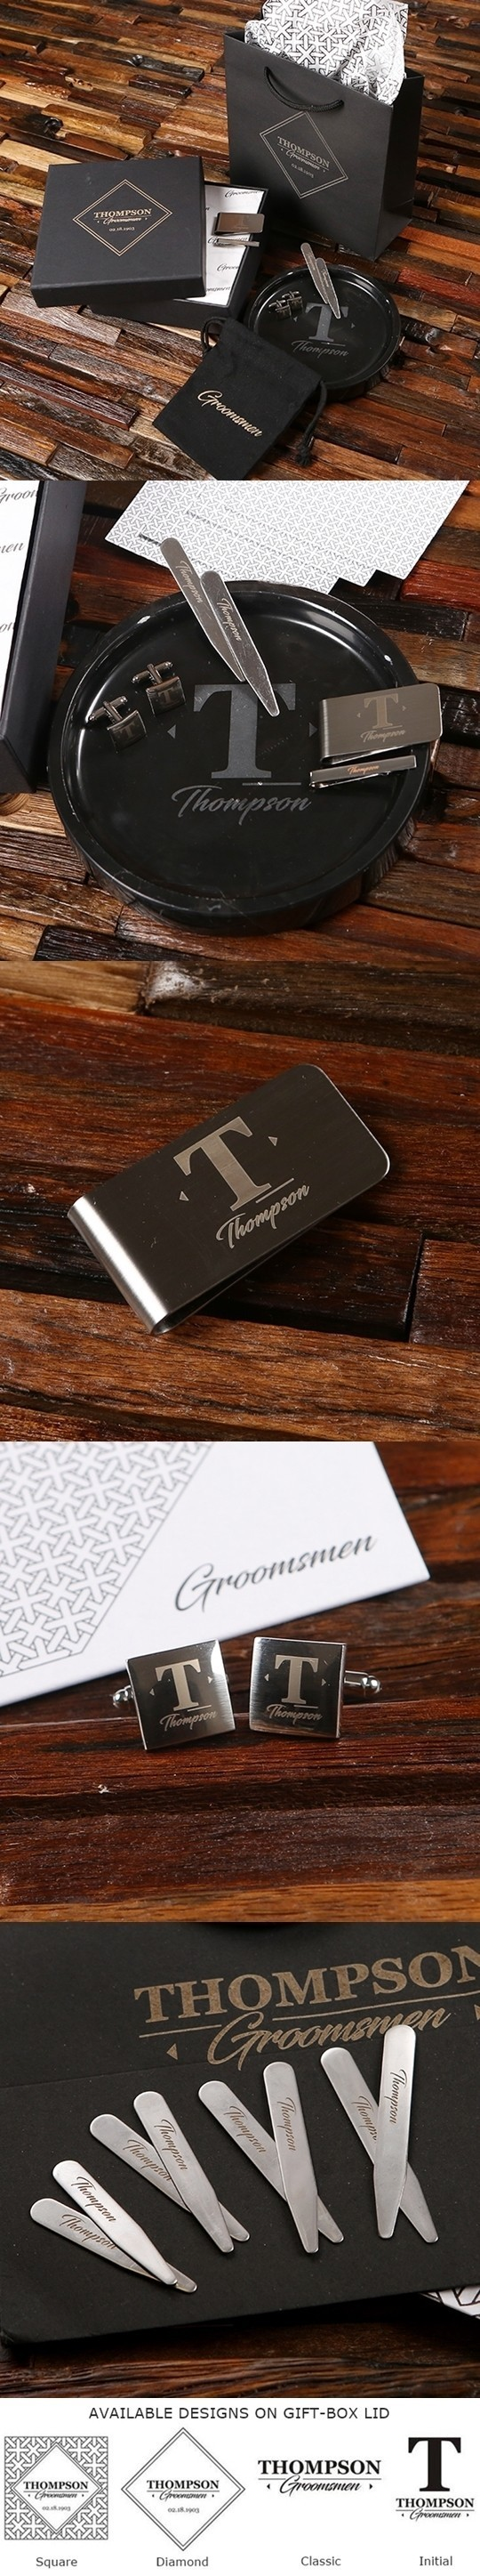 Personalized Gentleman's Accessory Set with Money Clip and Marble Tray